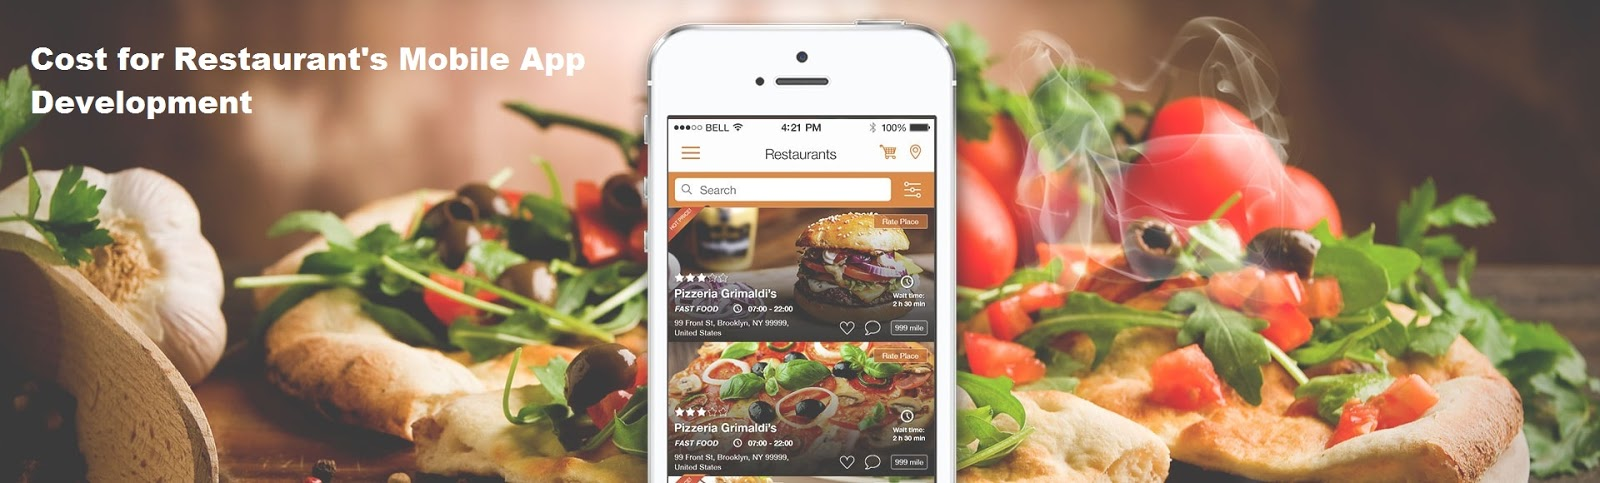 What Is The Cost Estimation For Restaurant S Mobile Development Like Zomato